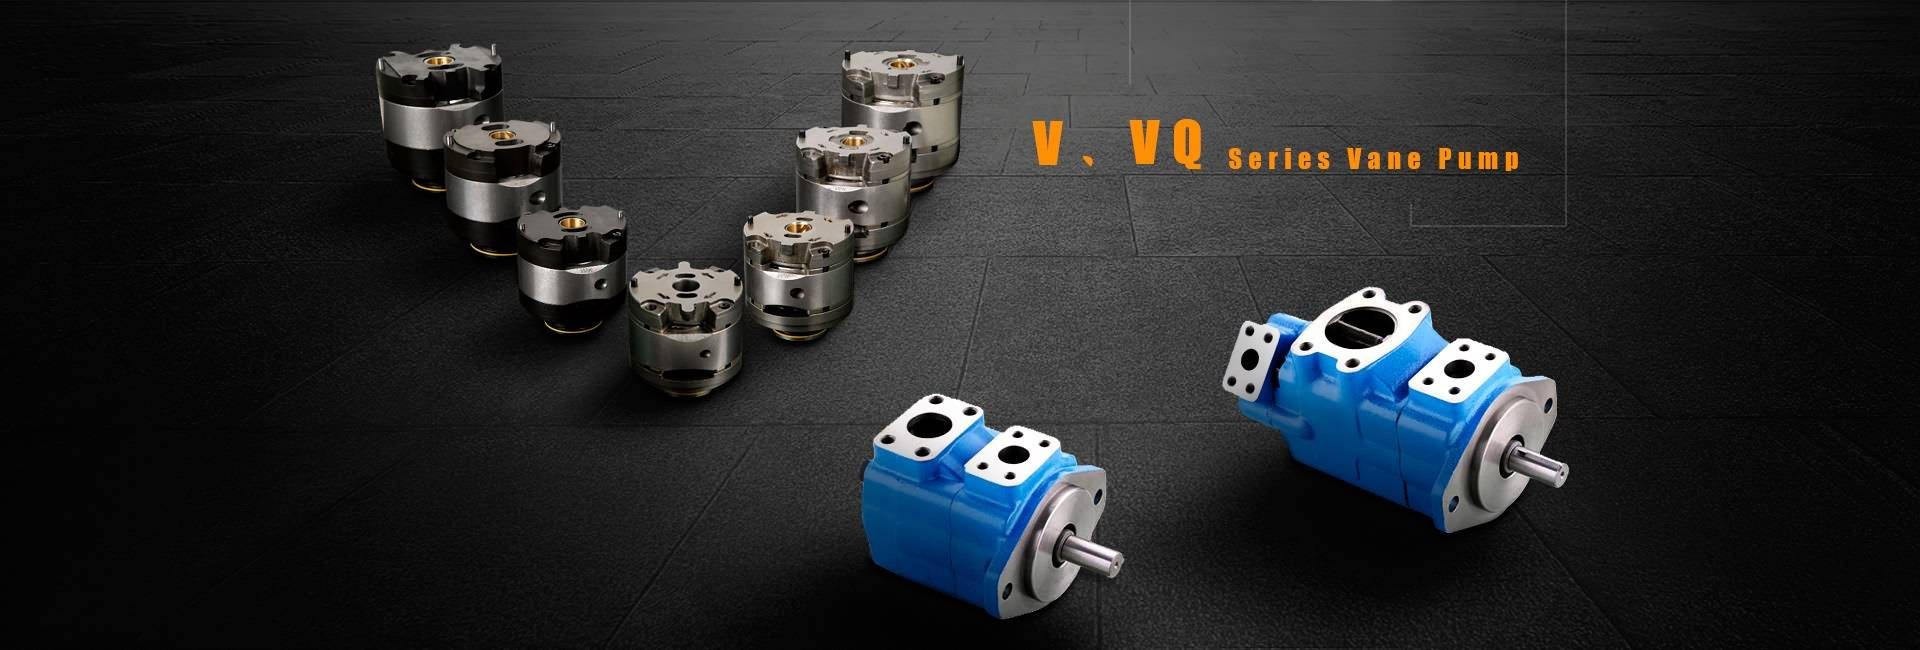 V,VQ Series Vane Pump